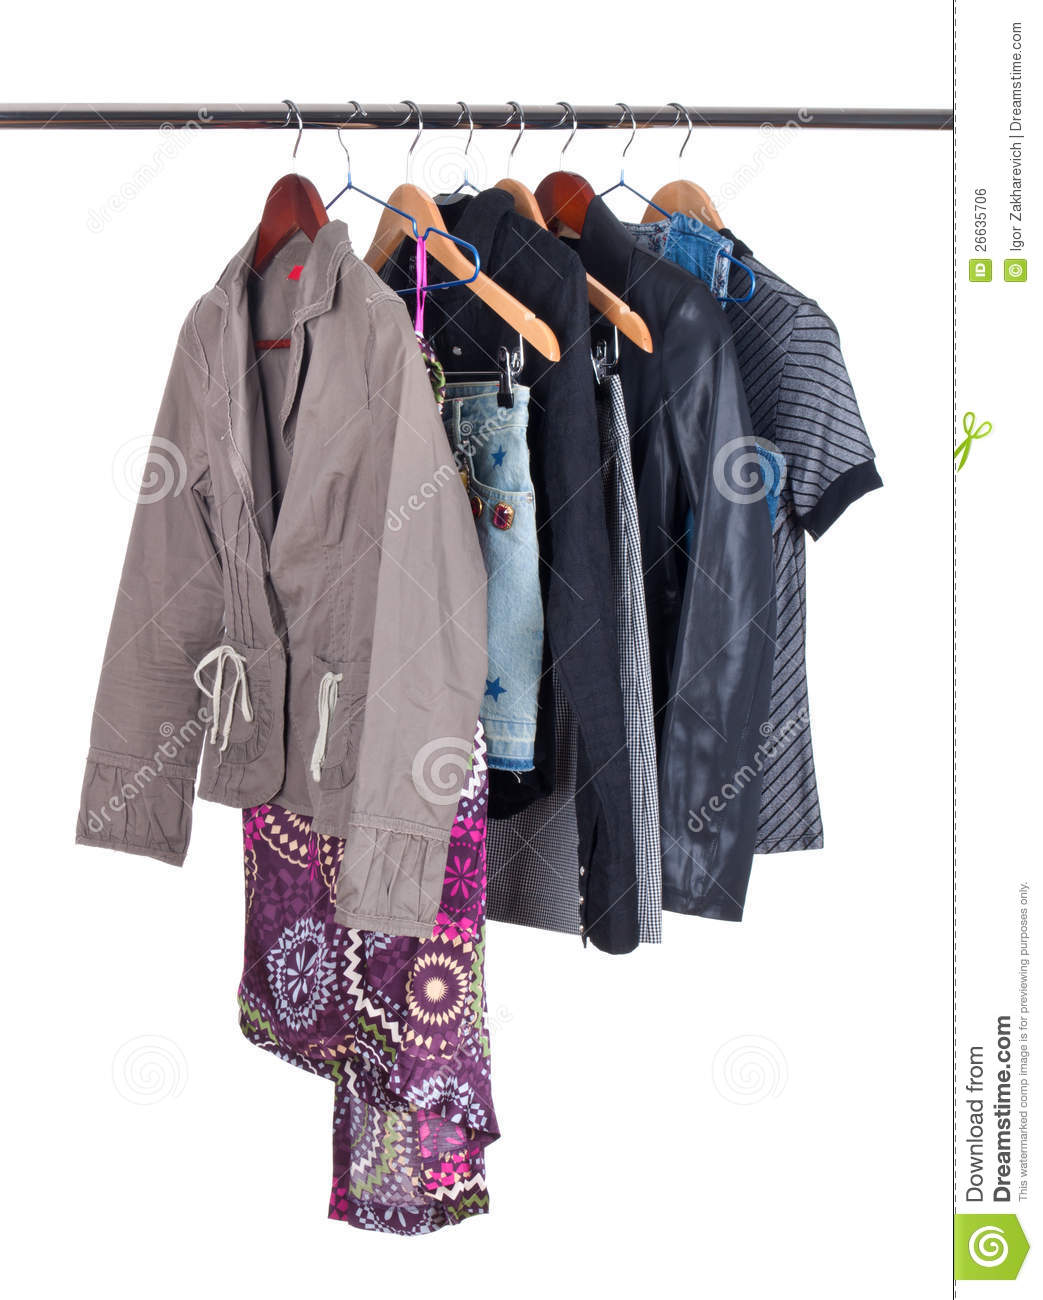 Clothing Hanging A On Display Royalty Free Stock Image - Image 26635706